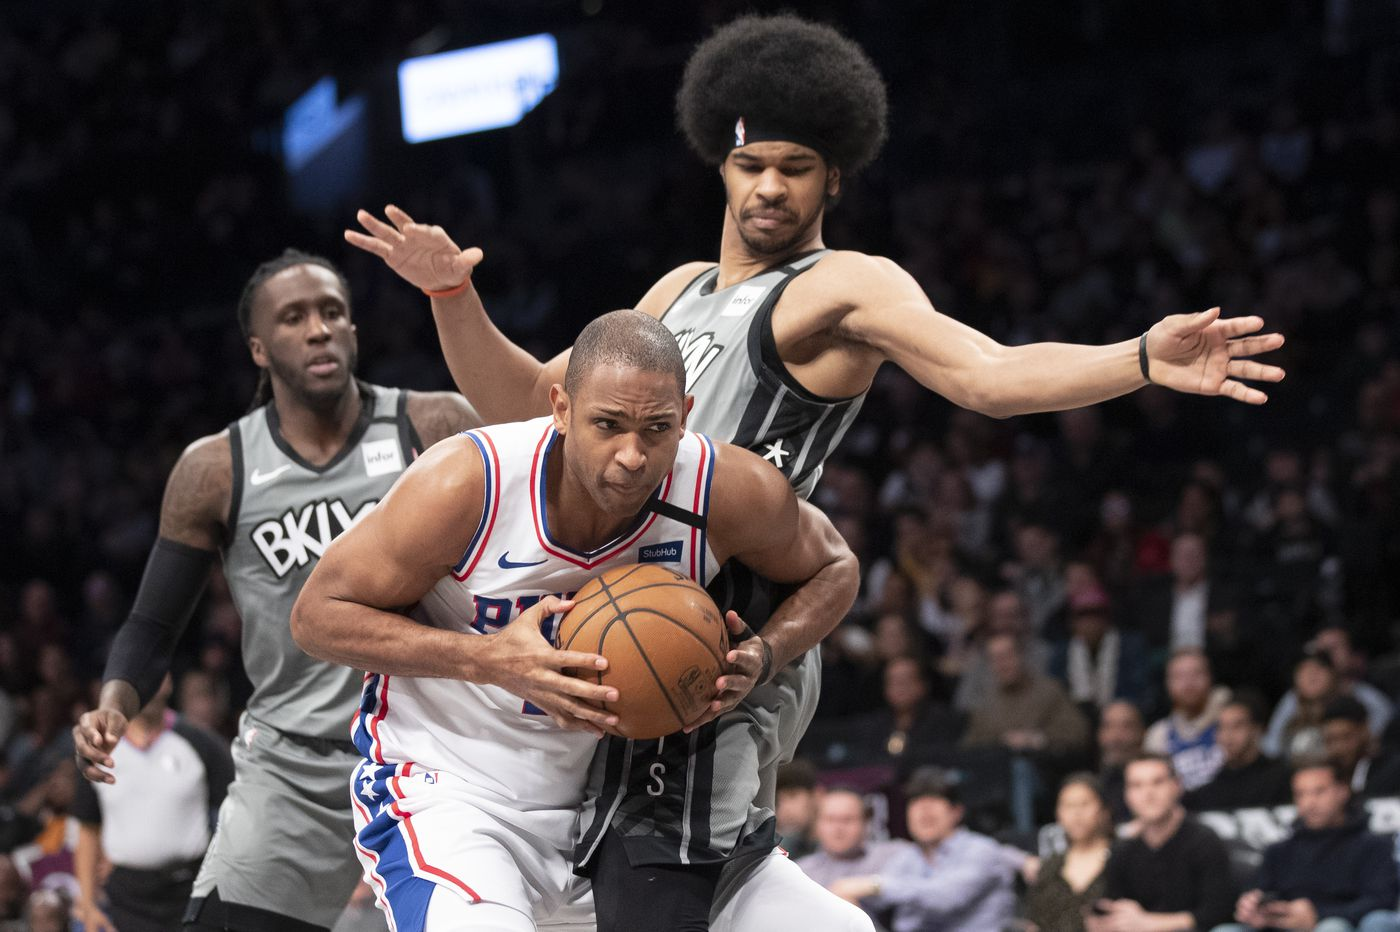 Al Horford's performance in Brooklyn is a positive sign for the Sixers